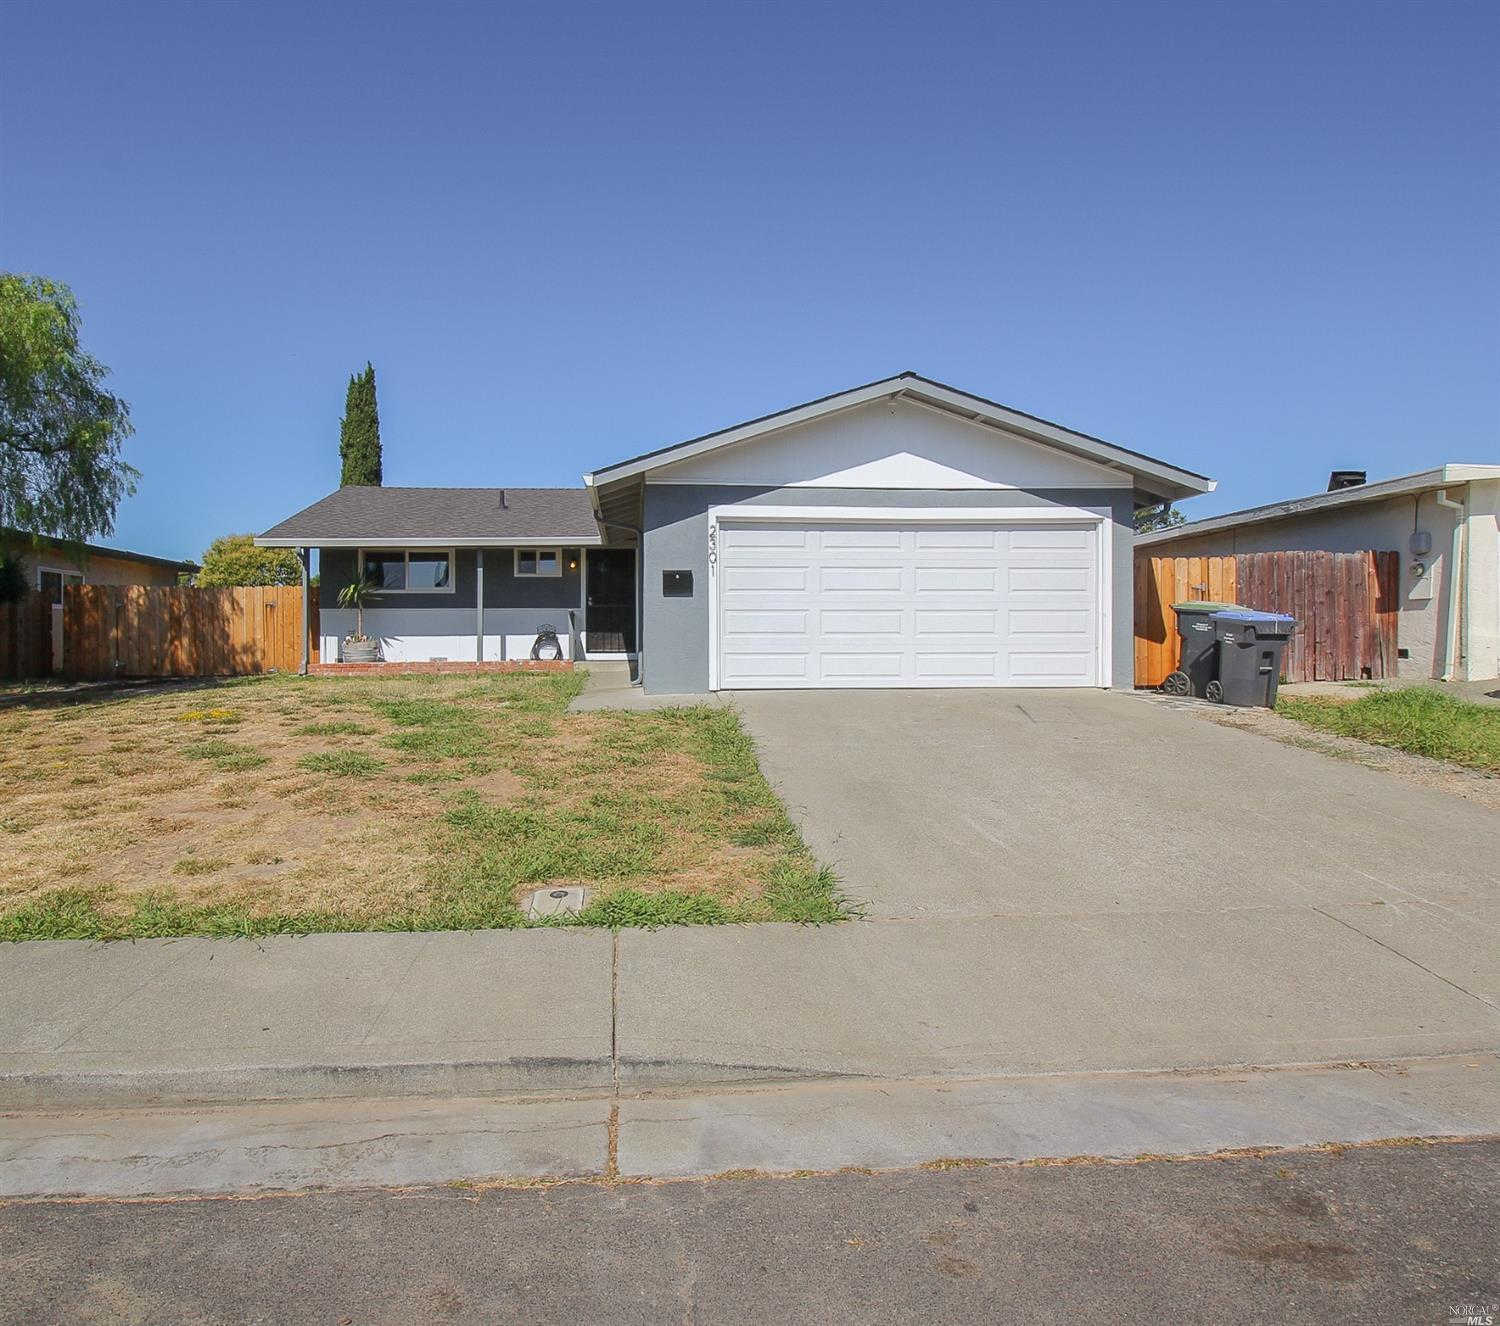 2301 Santa Rosa Drive, Fairfield, CA 94533 now has a new price of $360,000!